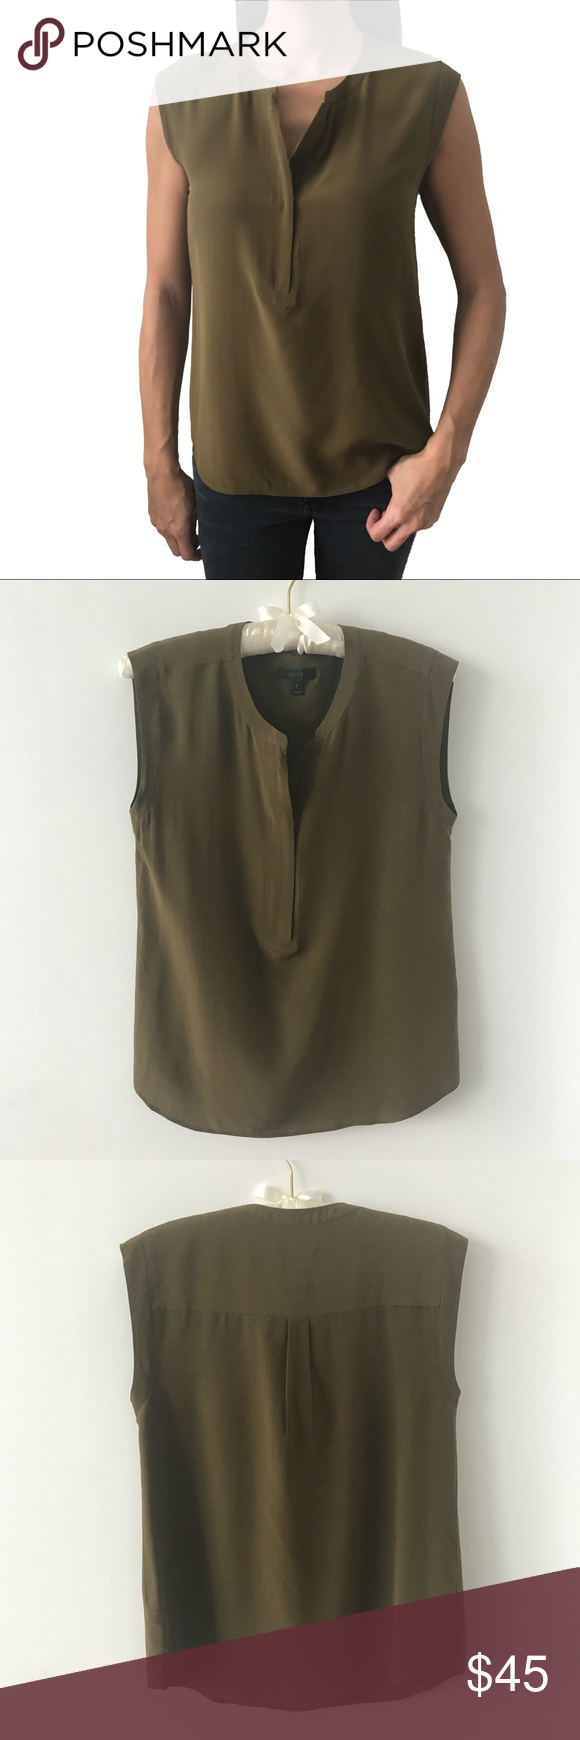 a00d28799024cc J. Crew Silk Zip Tank Top Olive Green Popover shirt in olive color by J